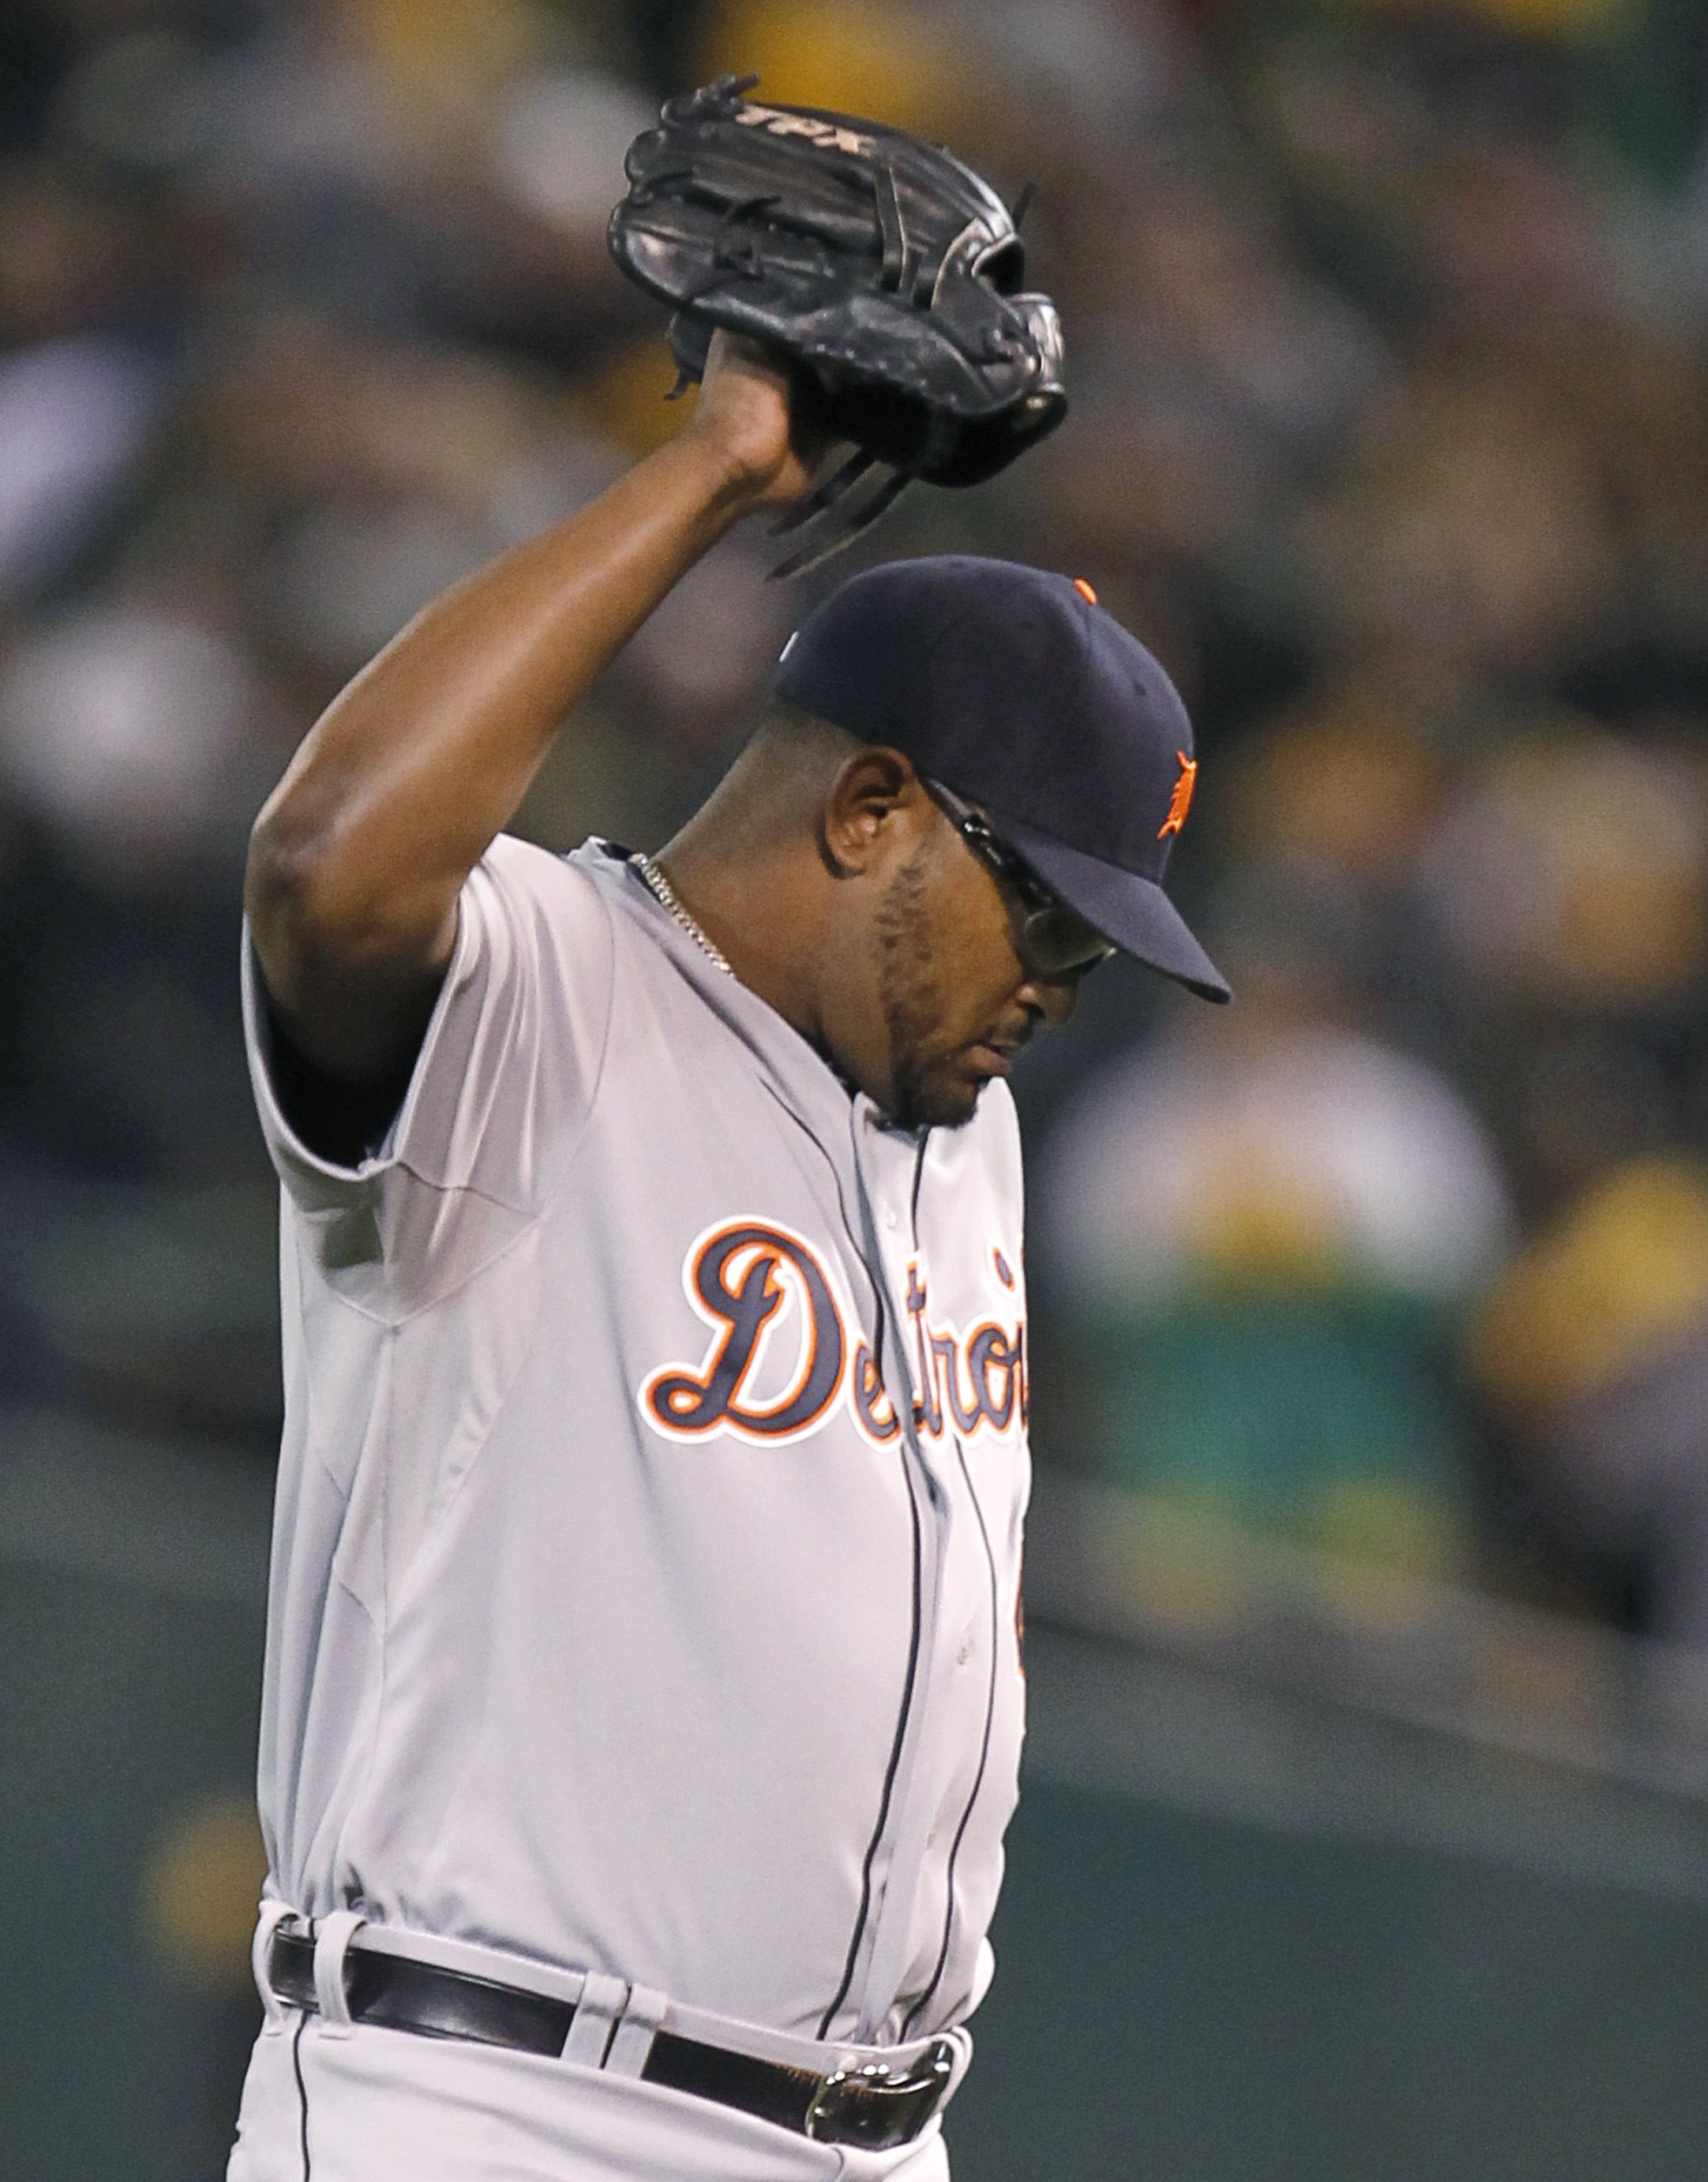 Jose Valverde got smacked around in the ninth inning as Detroit blew a chance to advance to the ALCS. (Reuters)